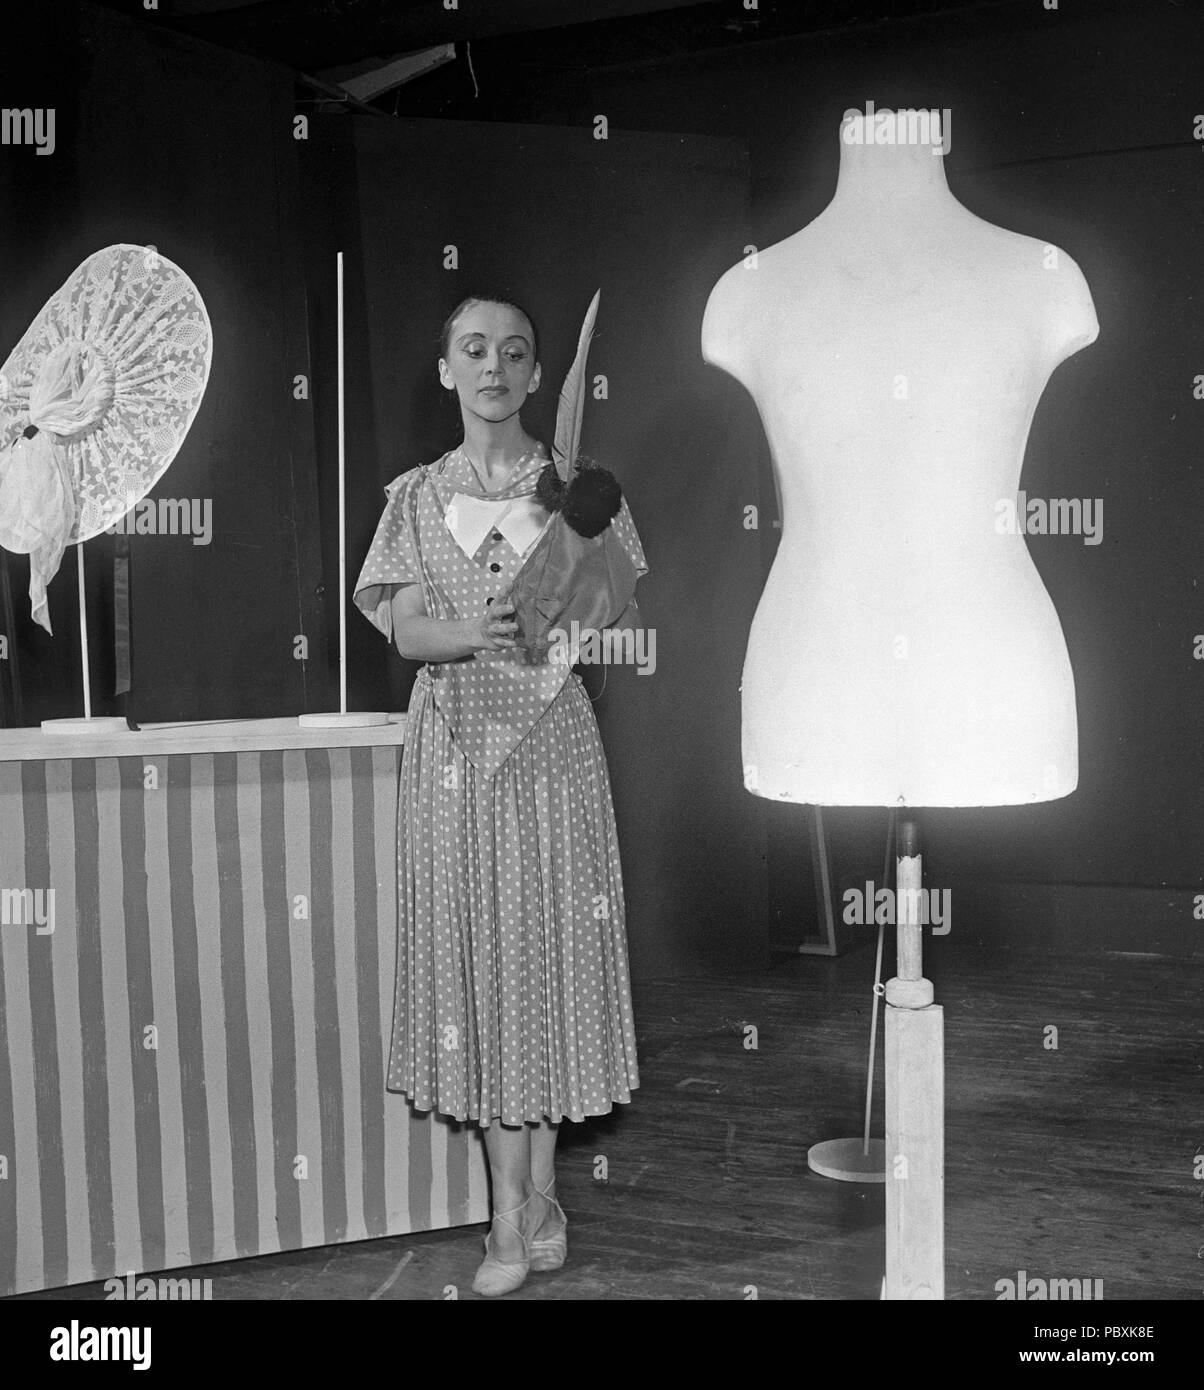 Else Fisher Bergman , 1918-2006. Swedish dancer. Married with Ingmar Bergman between 1943-1946 as his first wife. Pictured here on stage in a 1950s theatre production. Photo: Kristoffersson/BA27-12 - Stock Image